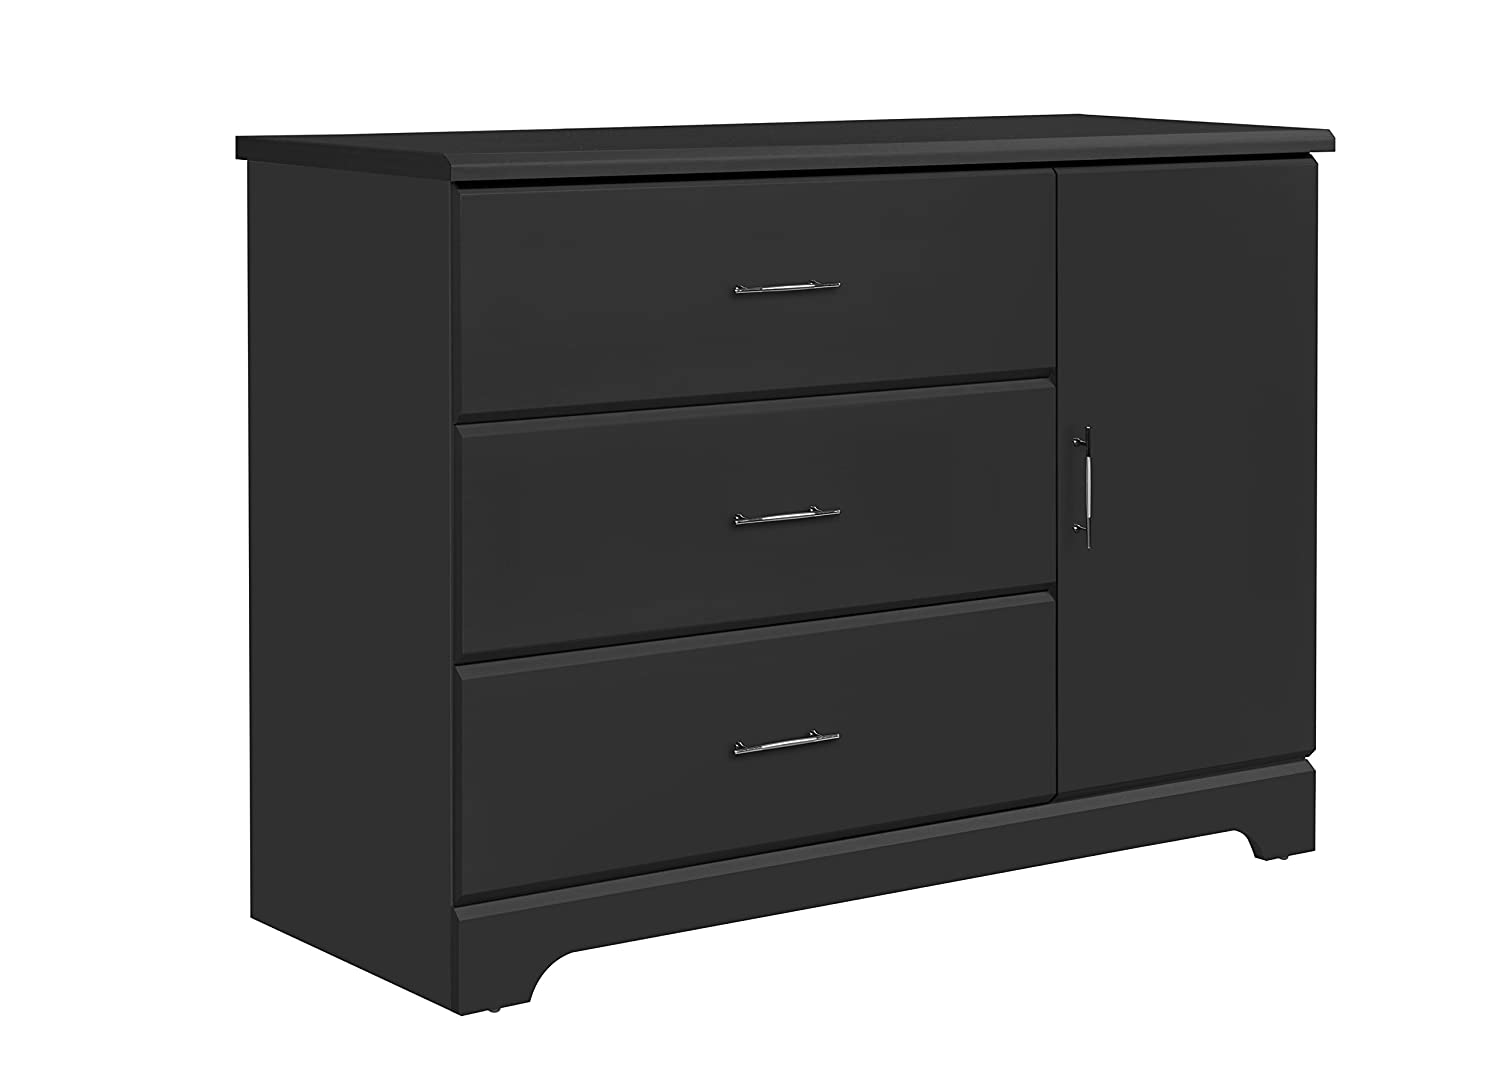 Storkcraft Brookside 3 Drawer Chest Black Kids Bedroom Dresser with 3 Drawers, Wood and Composite Construction, Ideal for Nursery Toddlers Room Kids Room Stork Craft 03663-10B